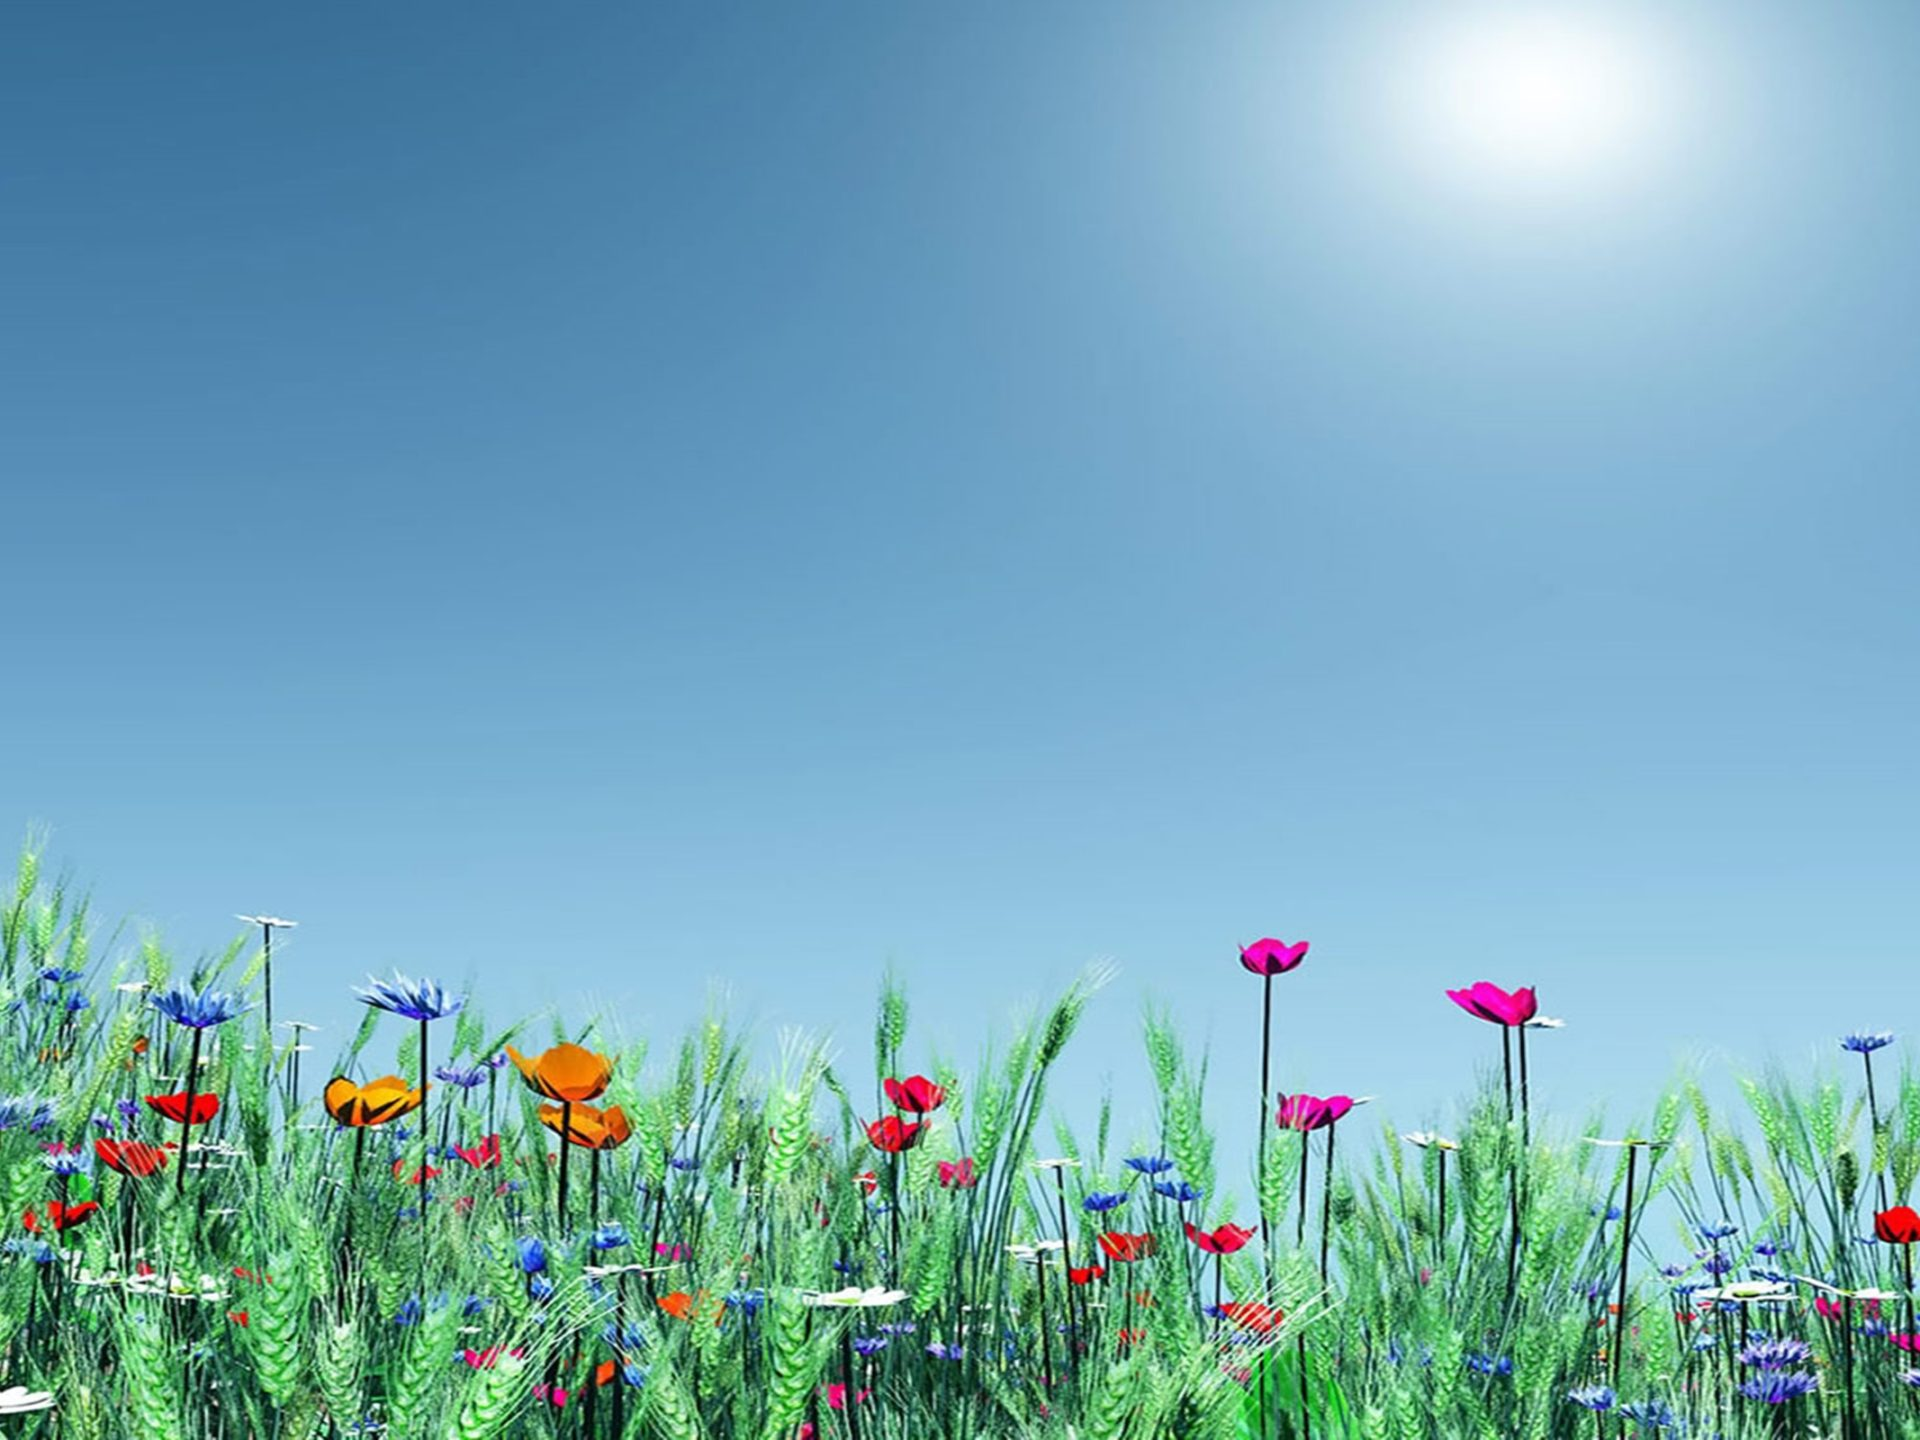 Free 3d Dinosaur Wallpaper Spring Meadow Flowers Poppies Nature Hd Wallpapers